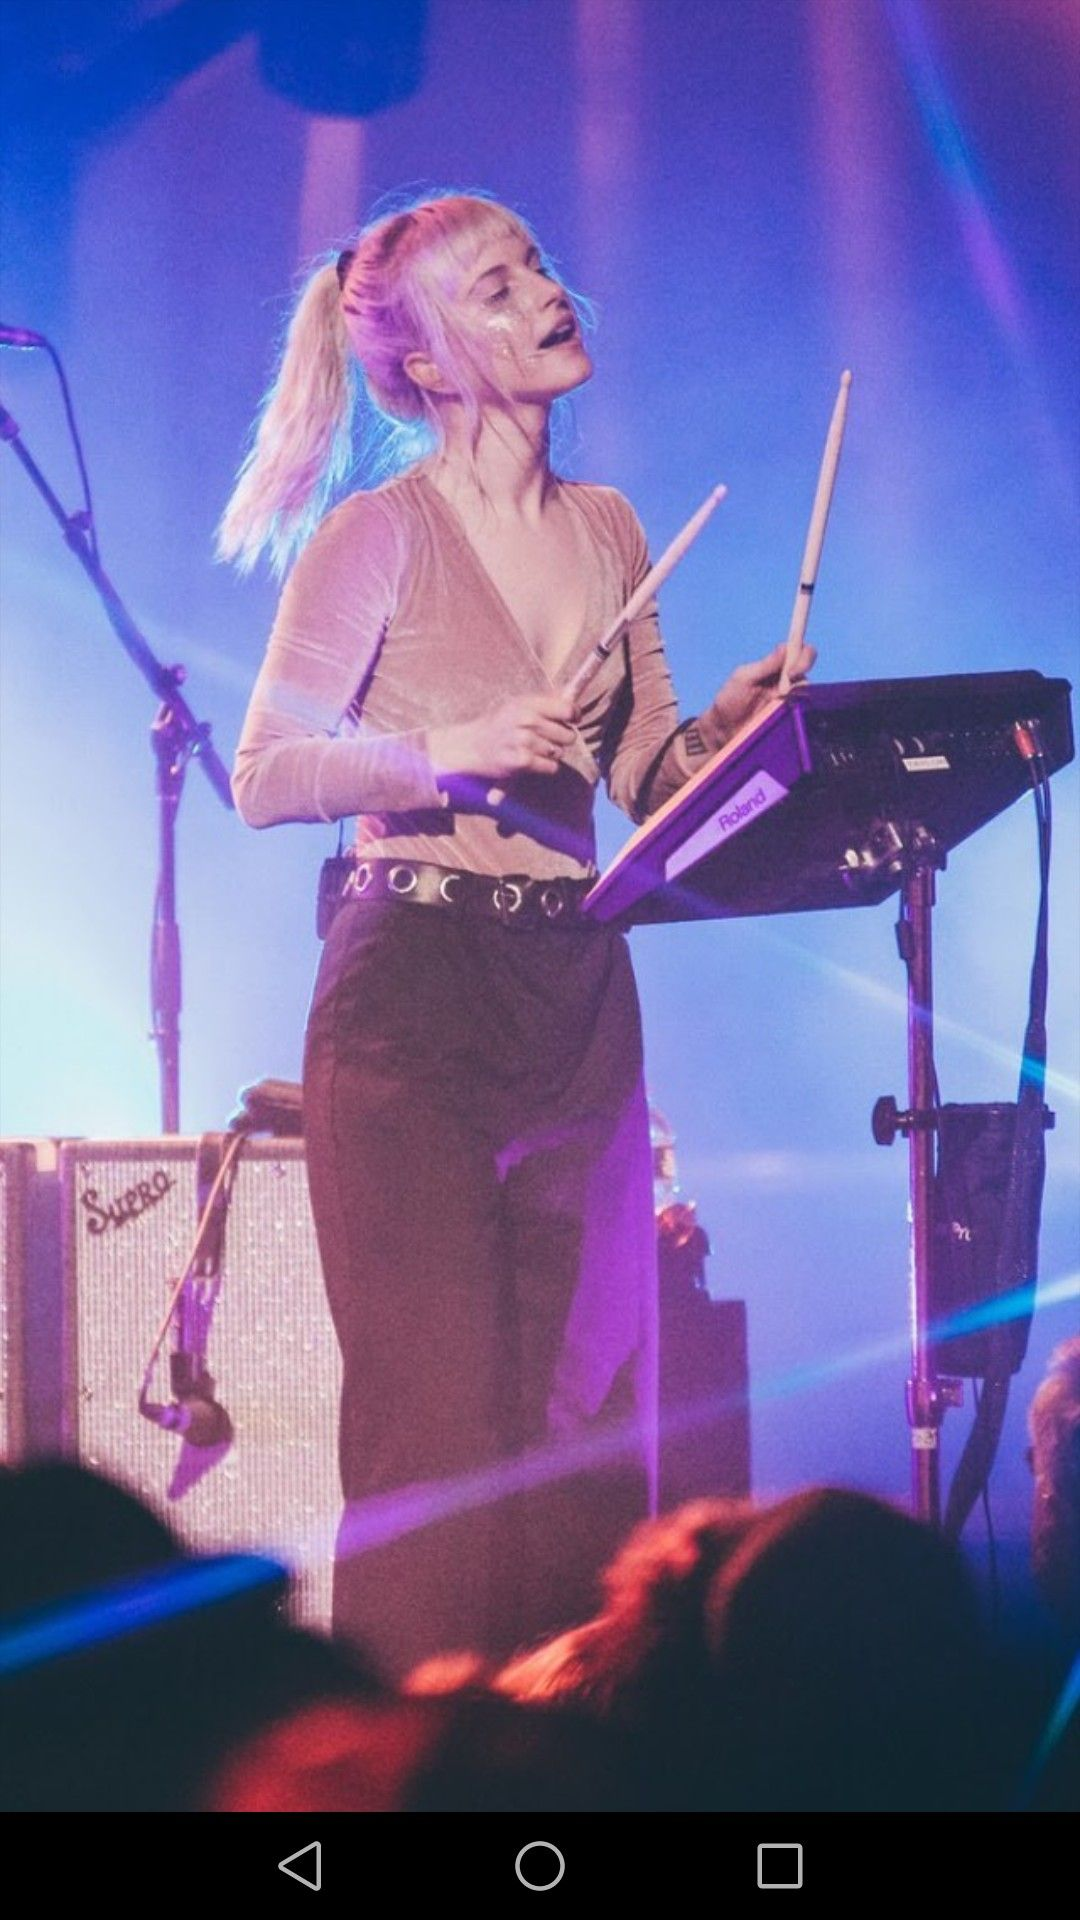 Hayley Williams Paramore Phone Background Wallpaper Hayley Williams Style Hayley Williams Hayley Paramore